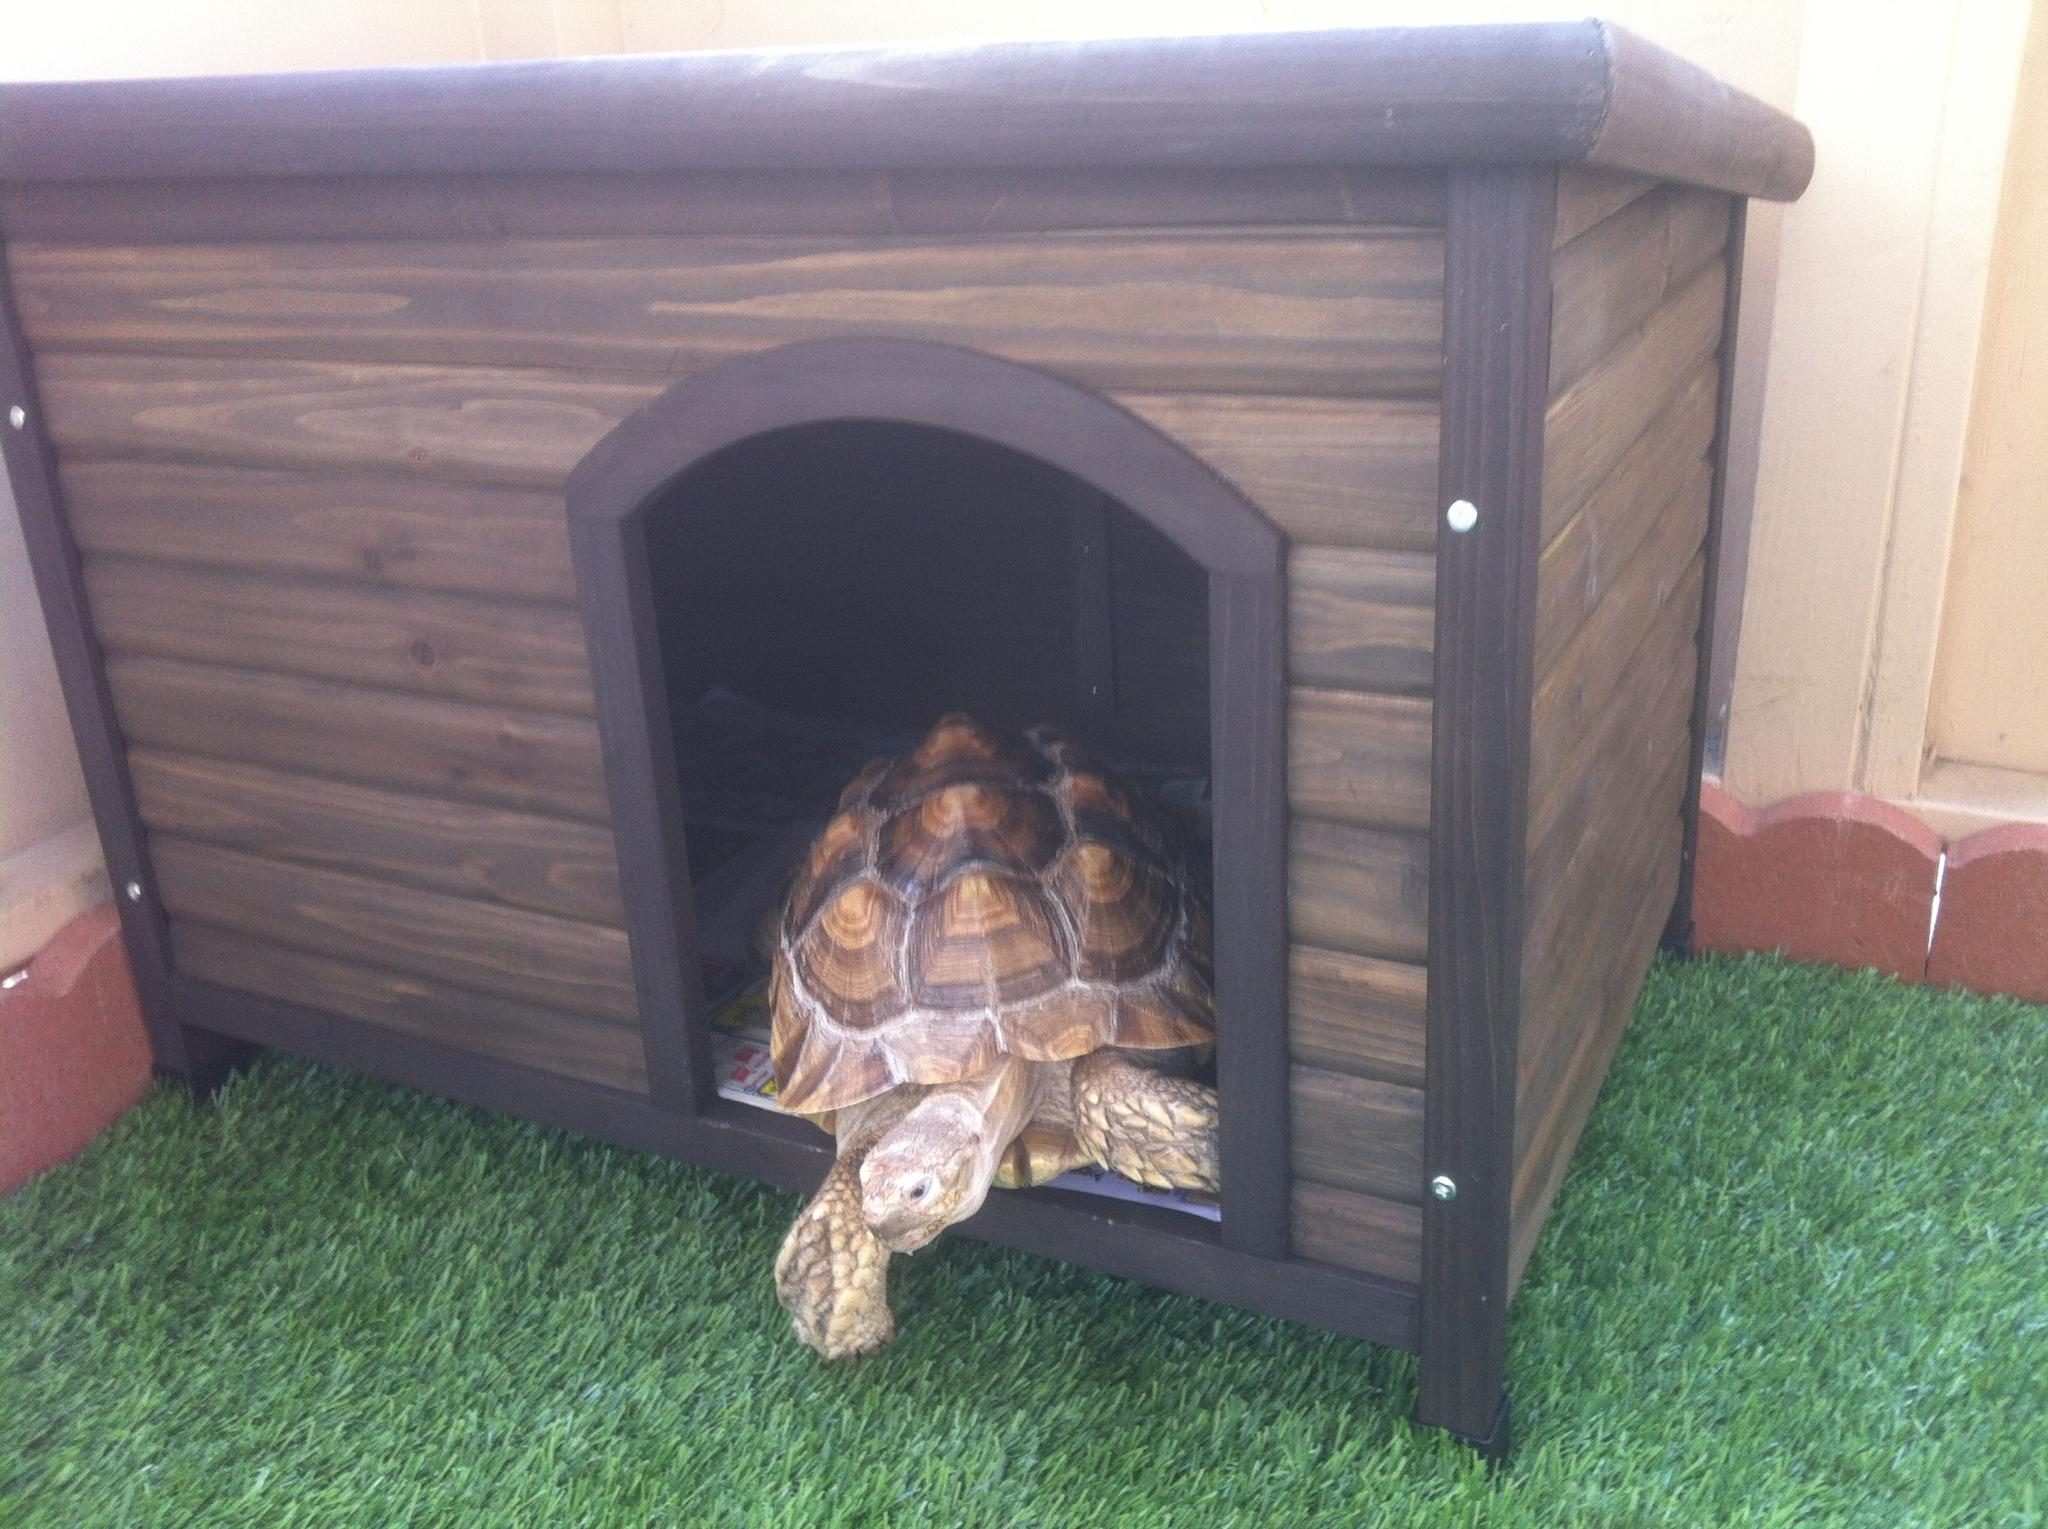 Morty the Sulcata Tortoise investigating his new Boomer & George Log Cabin Dog House